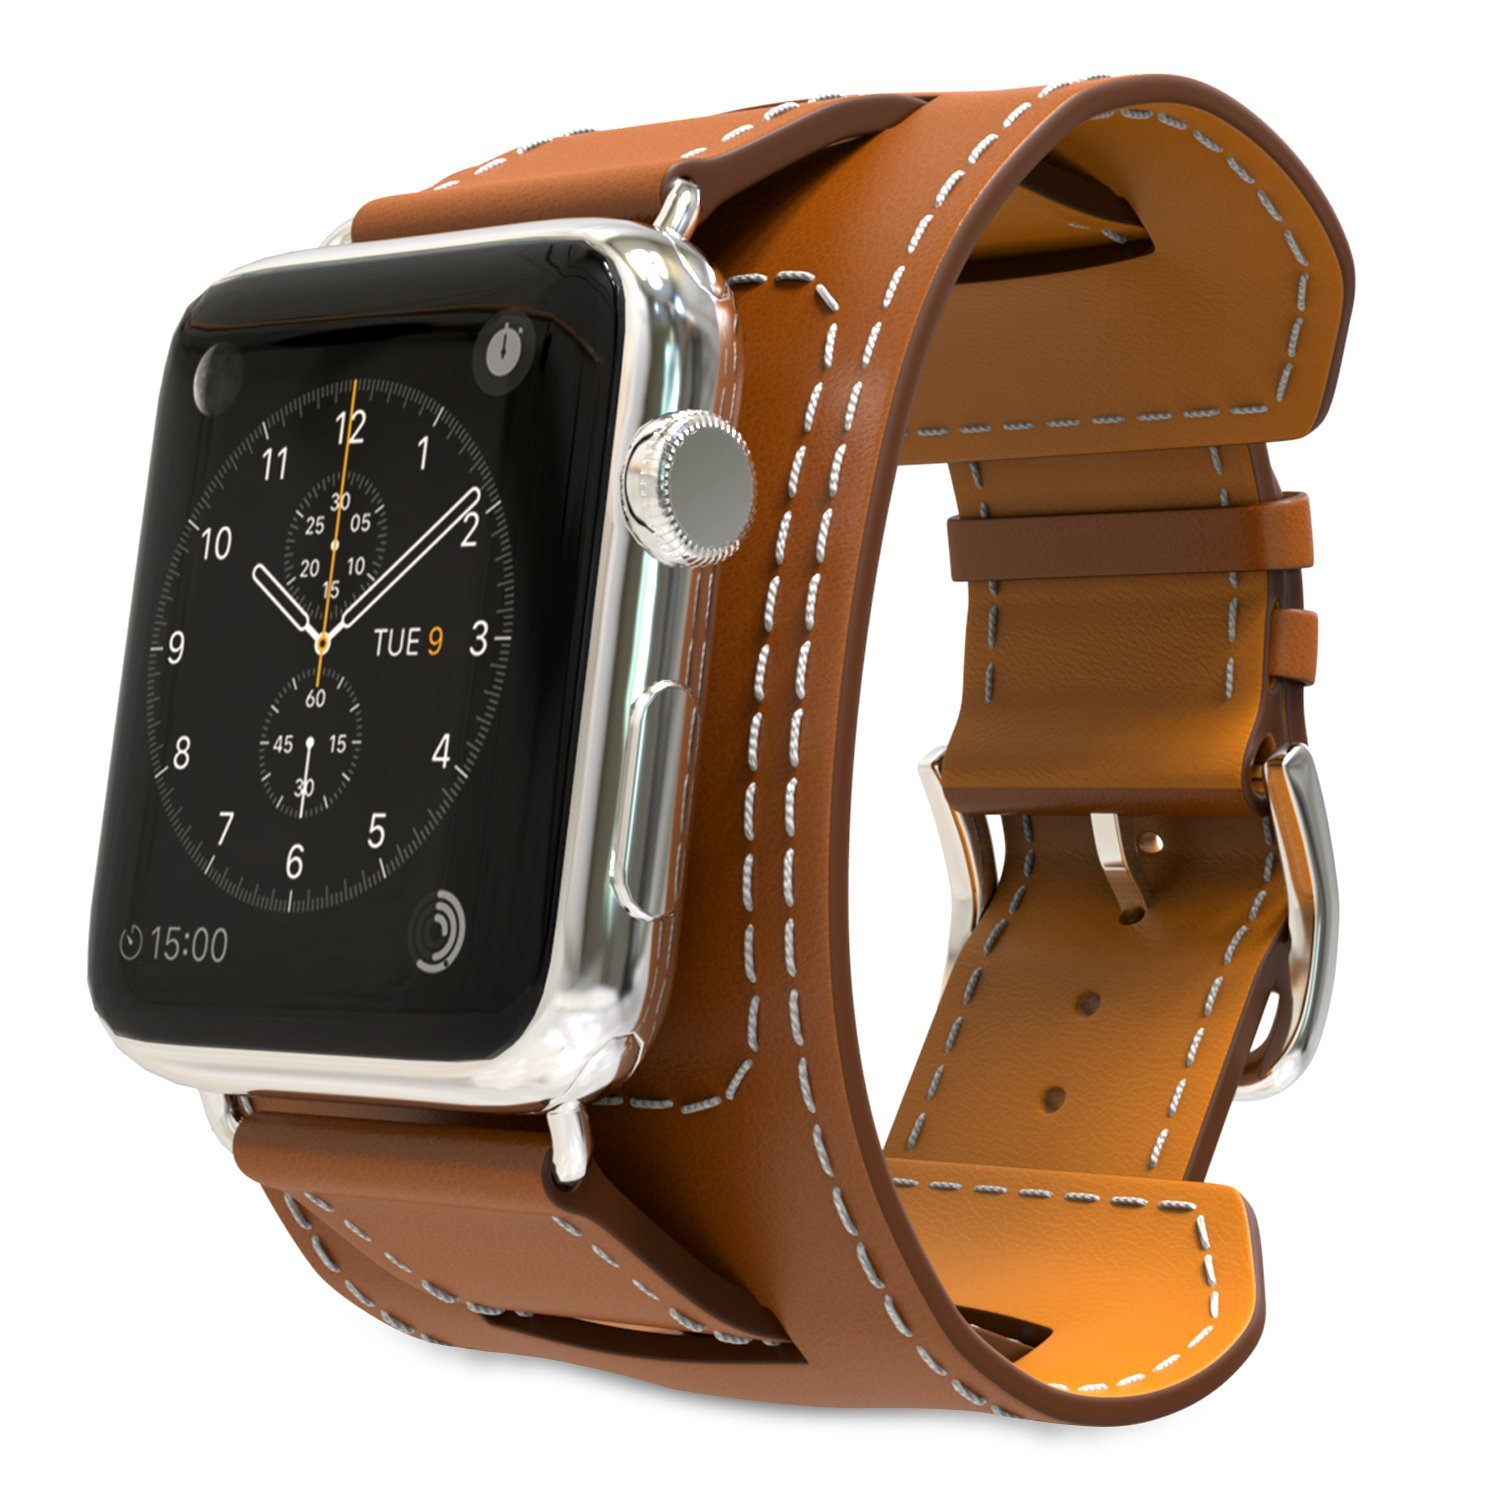 Apple Watch Band MoKo